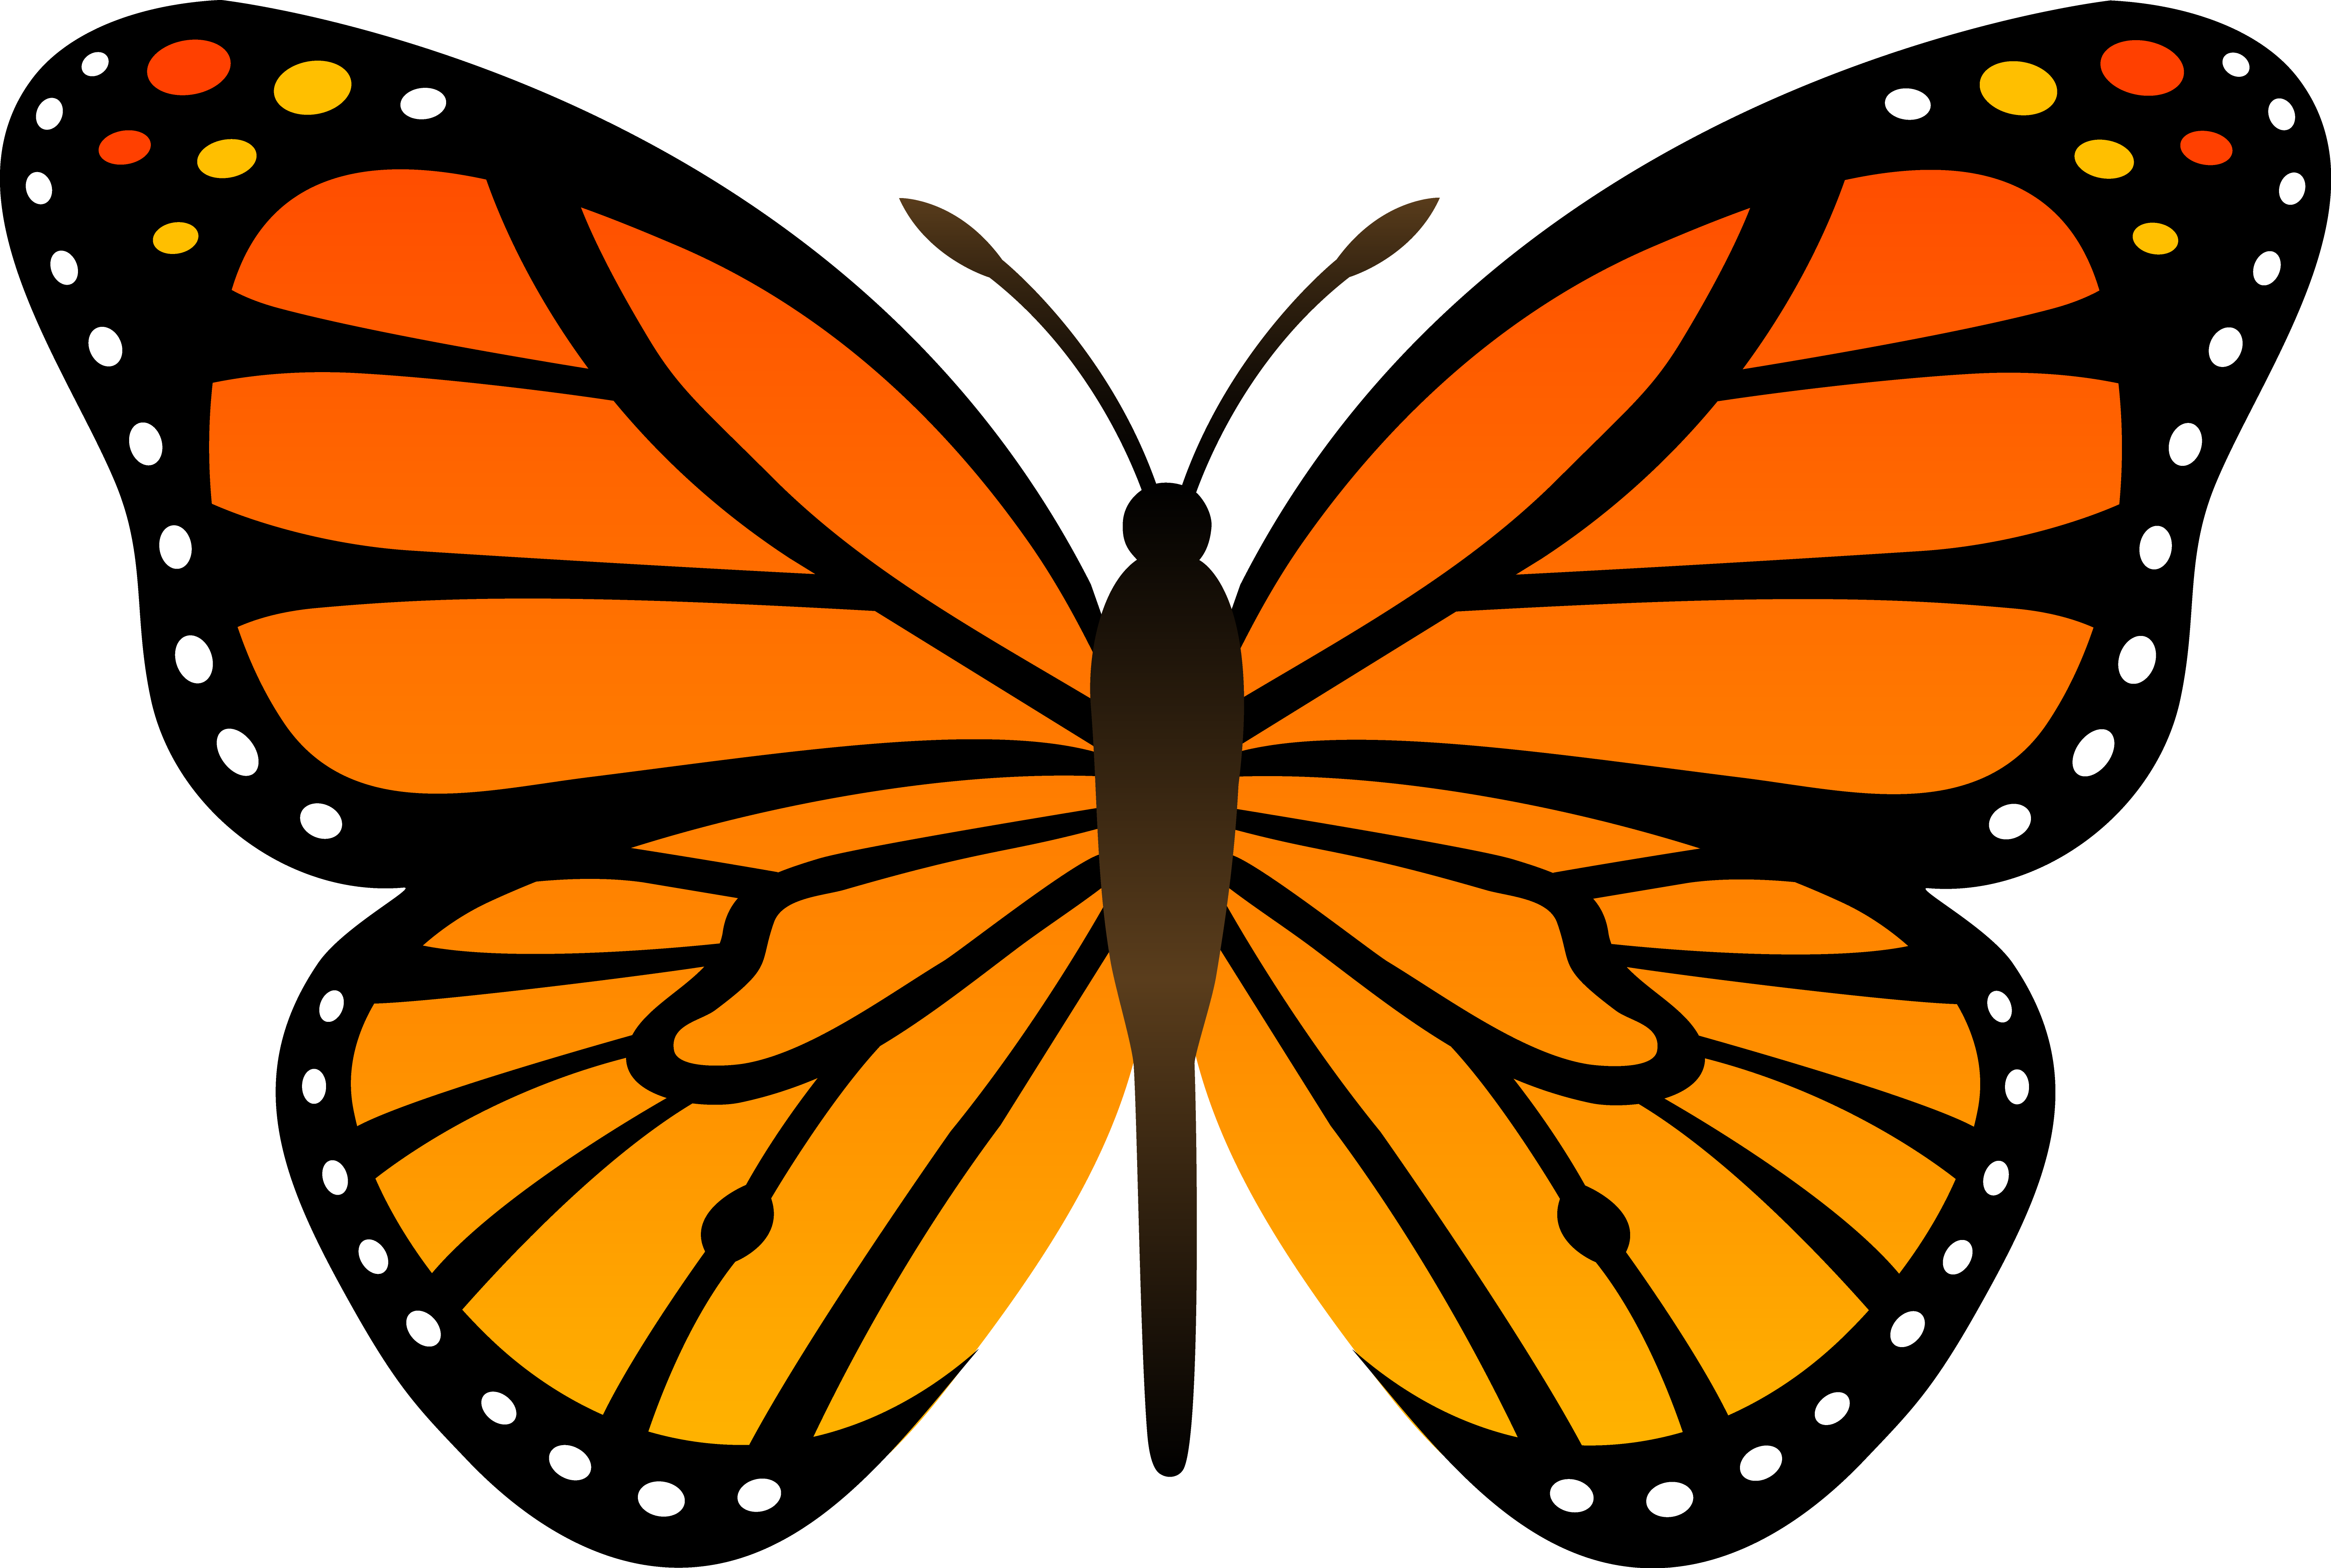 Butterfly clipart free use clip royalty free Monarch Butterfly Clipart & Look At Clip Art Images - ClipartLook clip royalty free